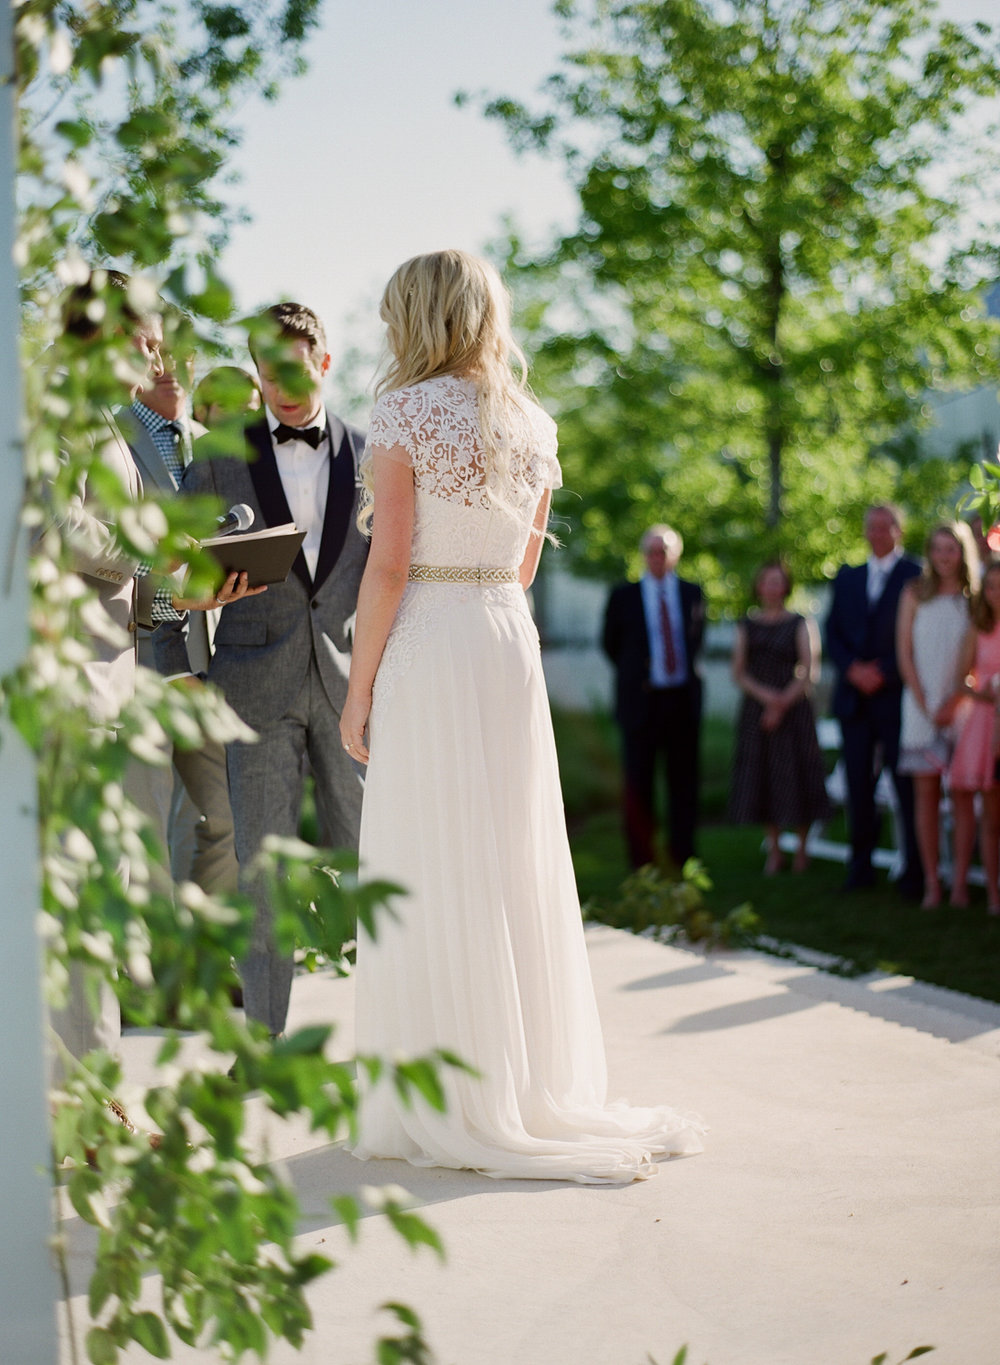 PROSPECT_HOUSE_WEDDING_AUSTIN_TX_BY_MATTHEW_MOORE_PHOTOGRAPHY_00403.jpg